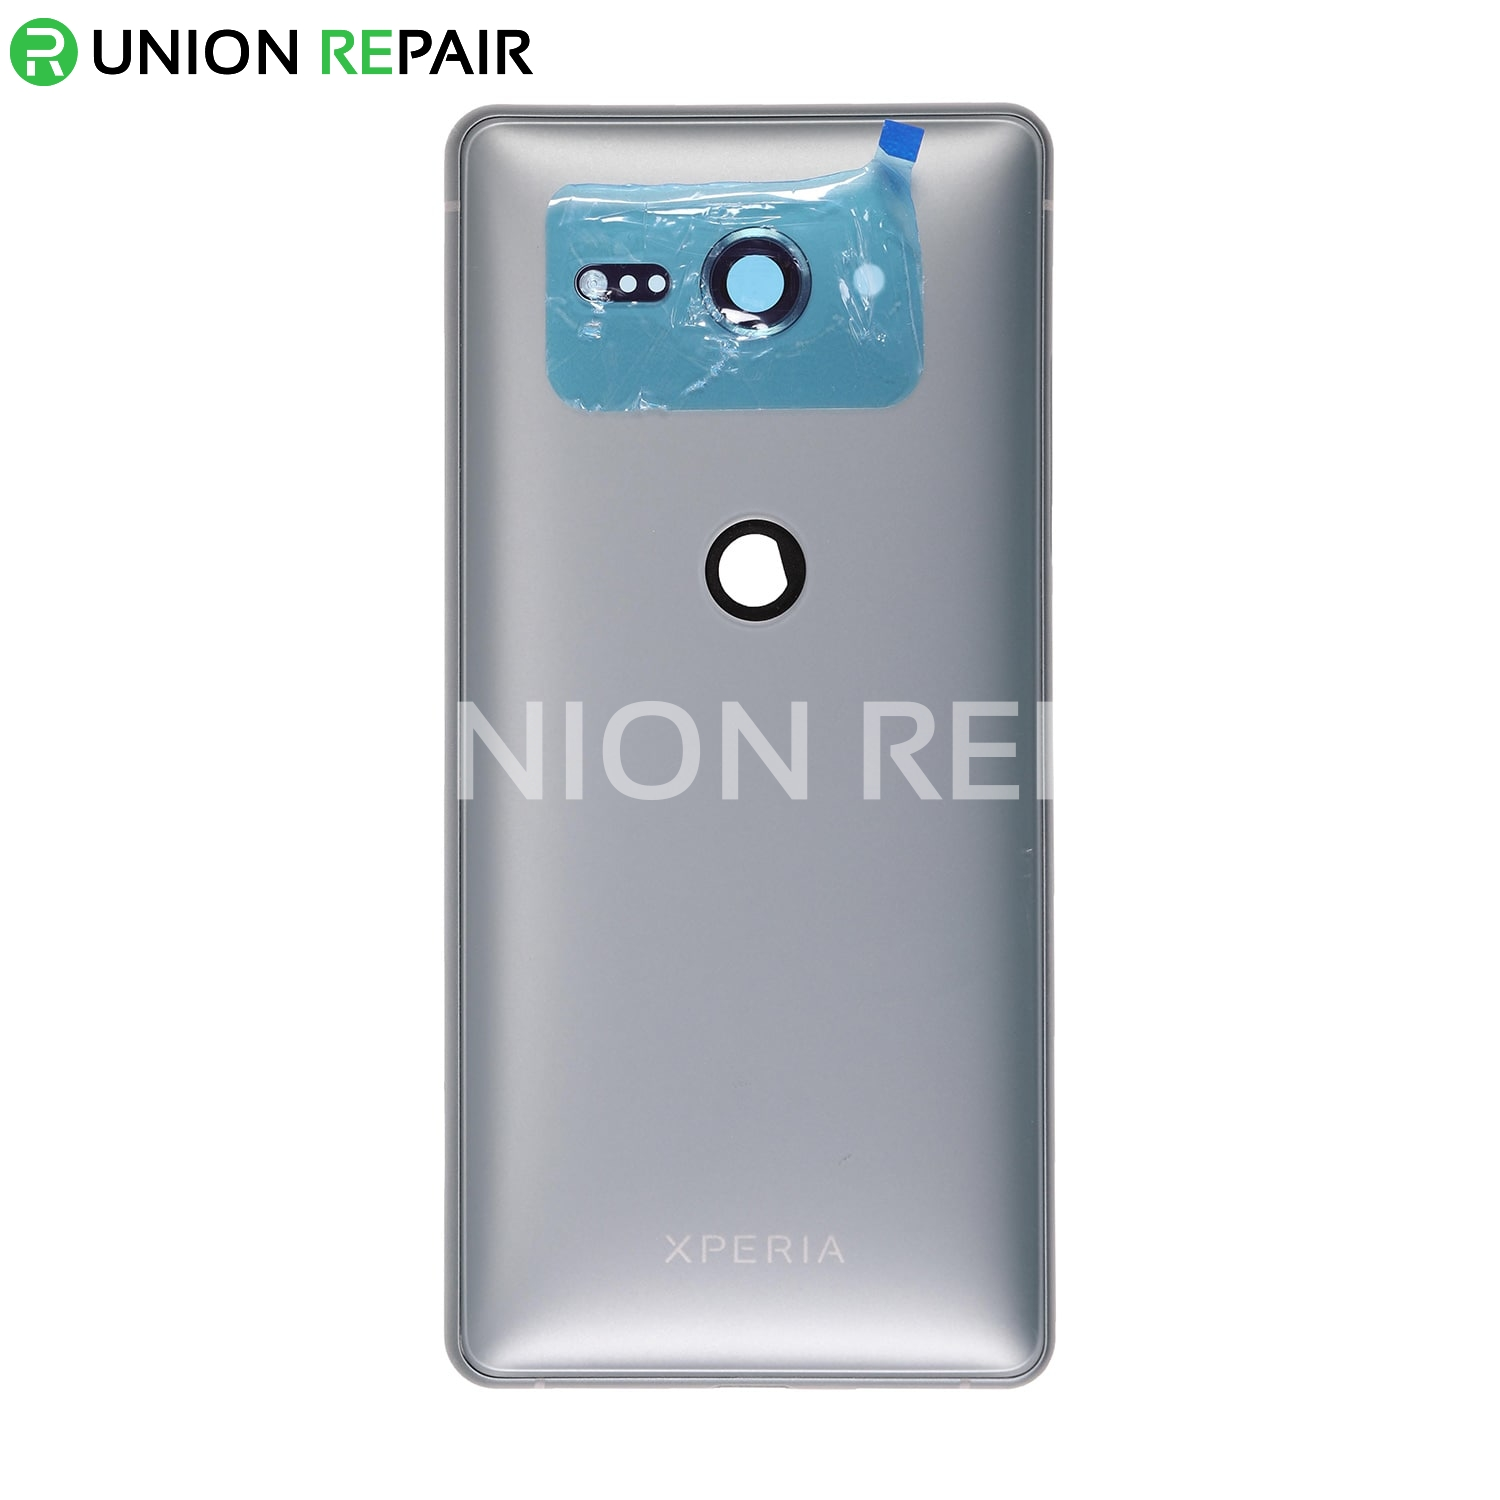 Replacement for Sony Xperia XZ2 Compact Back Cover - Green